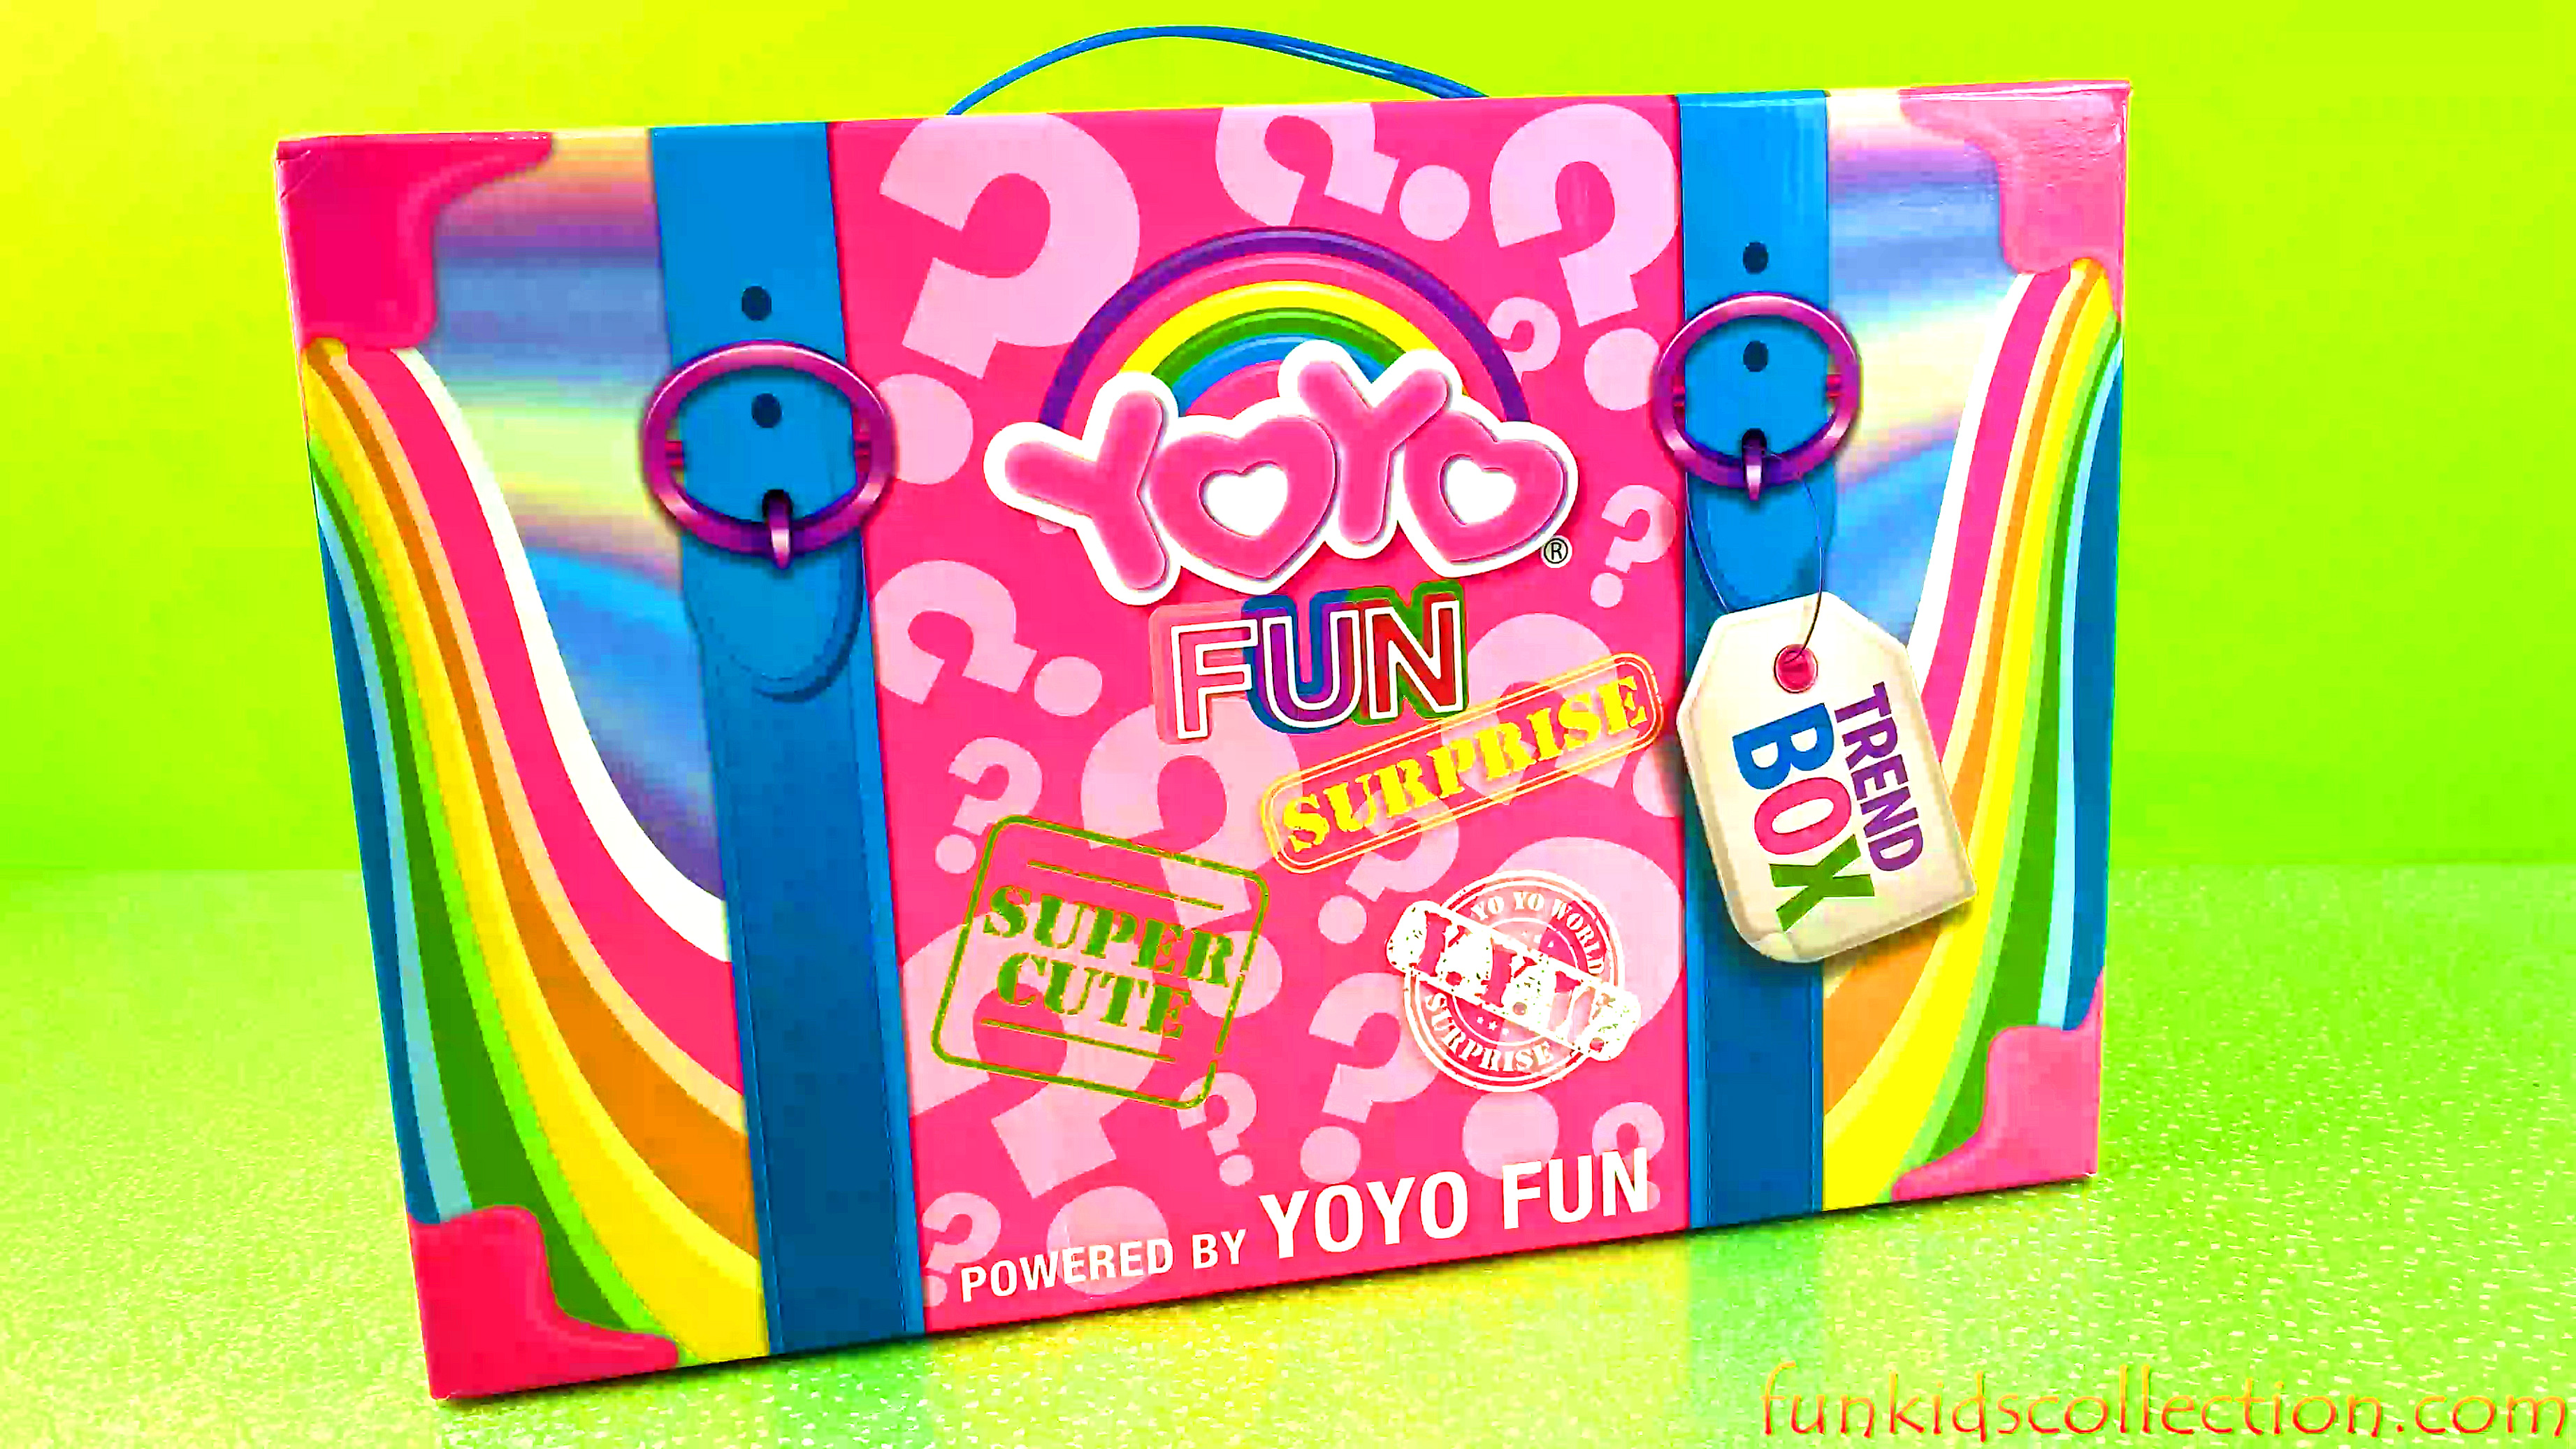 YOYO Fun Mystery Trend Box Review | YOYO Toy Surprises Slime Surprises Self Inflating Balloons